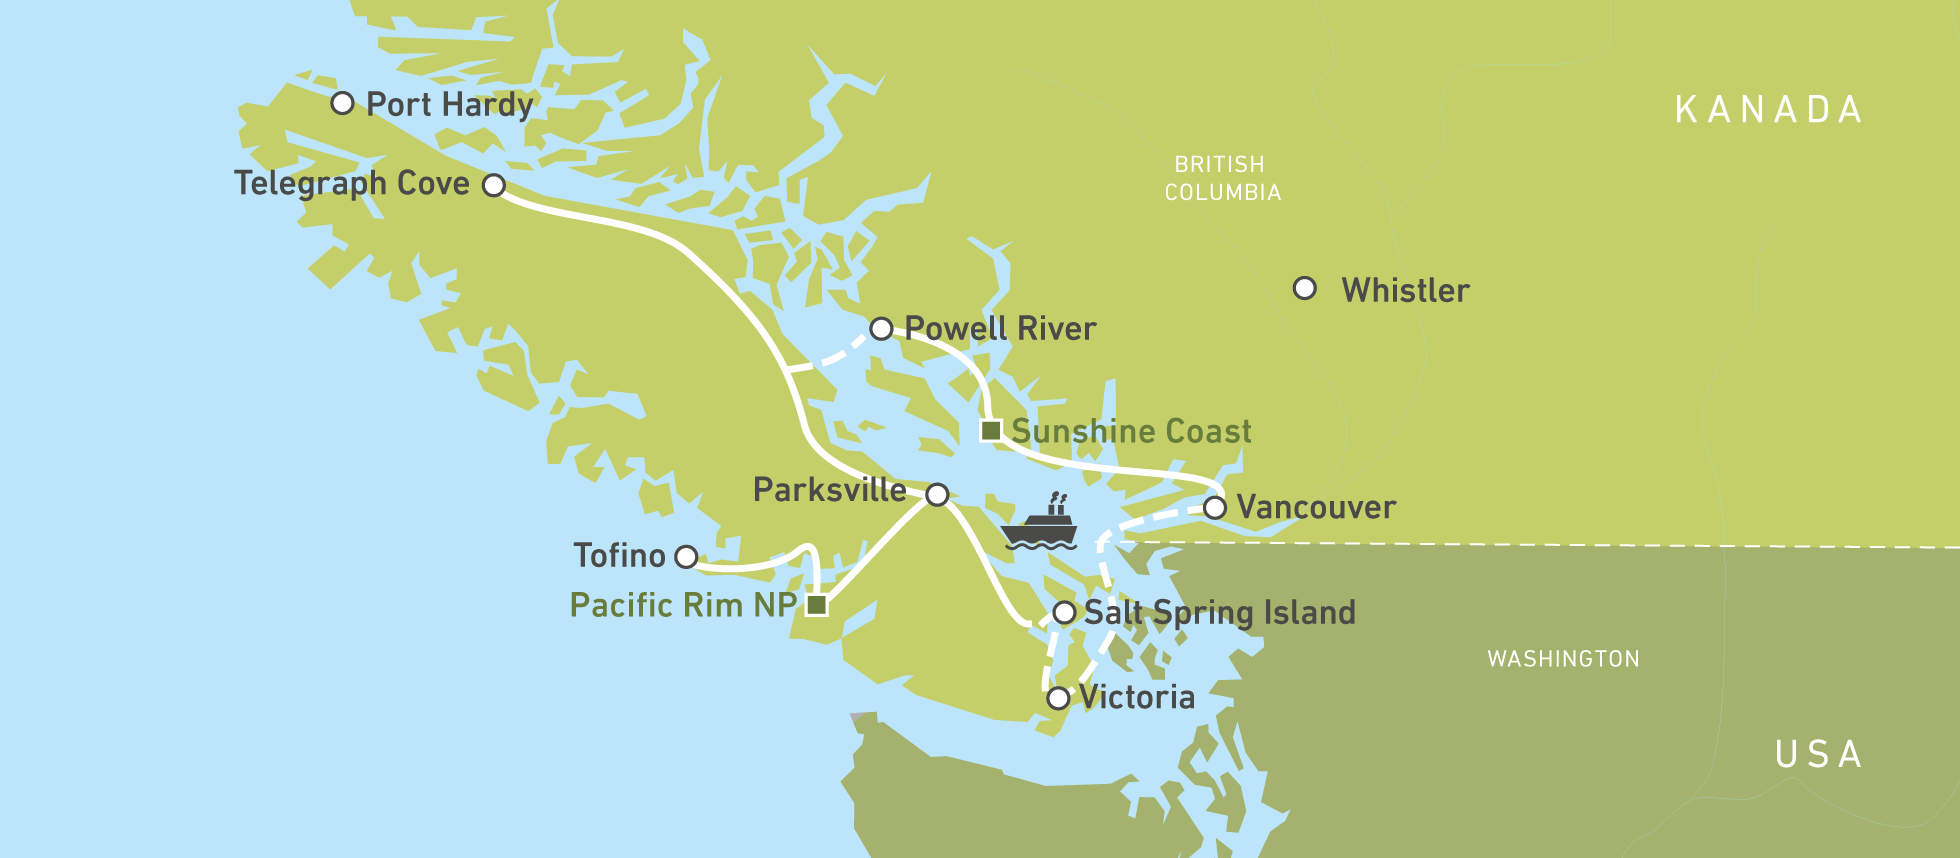 Tofino Bc Map And Information